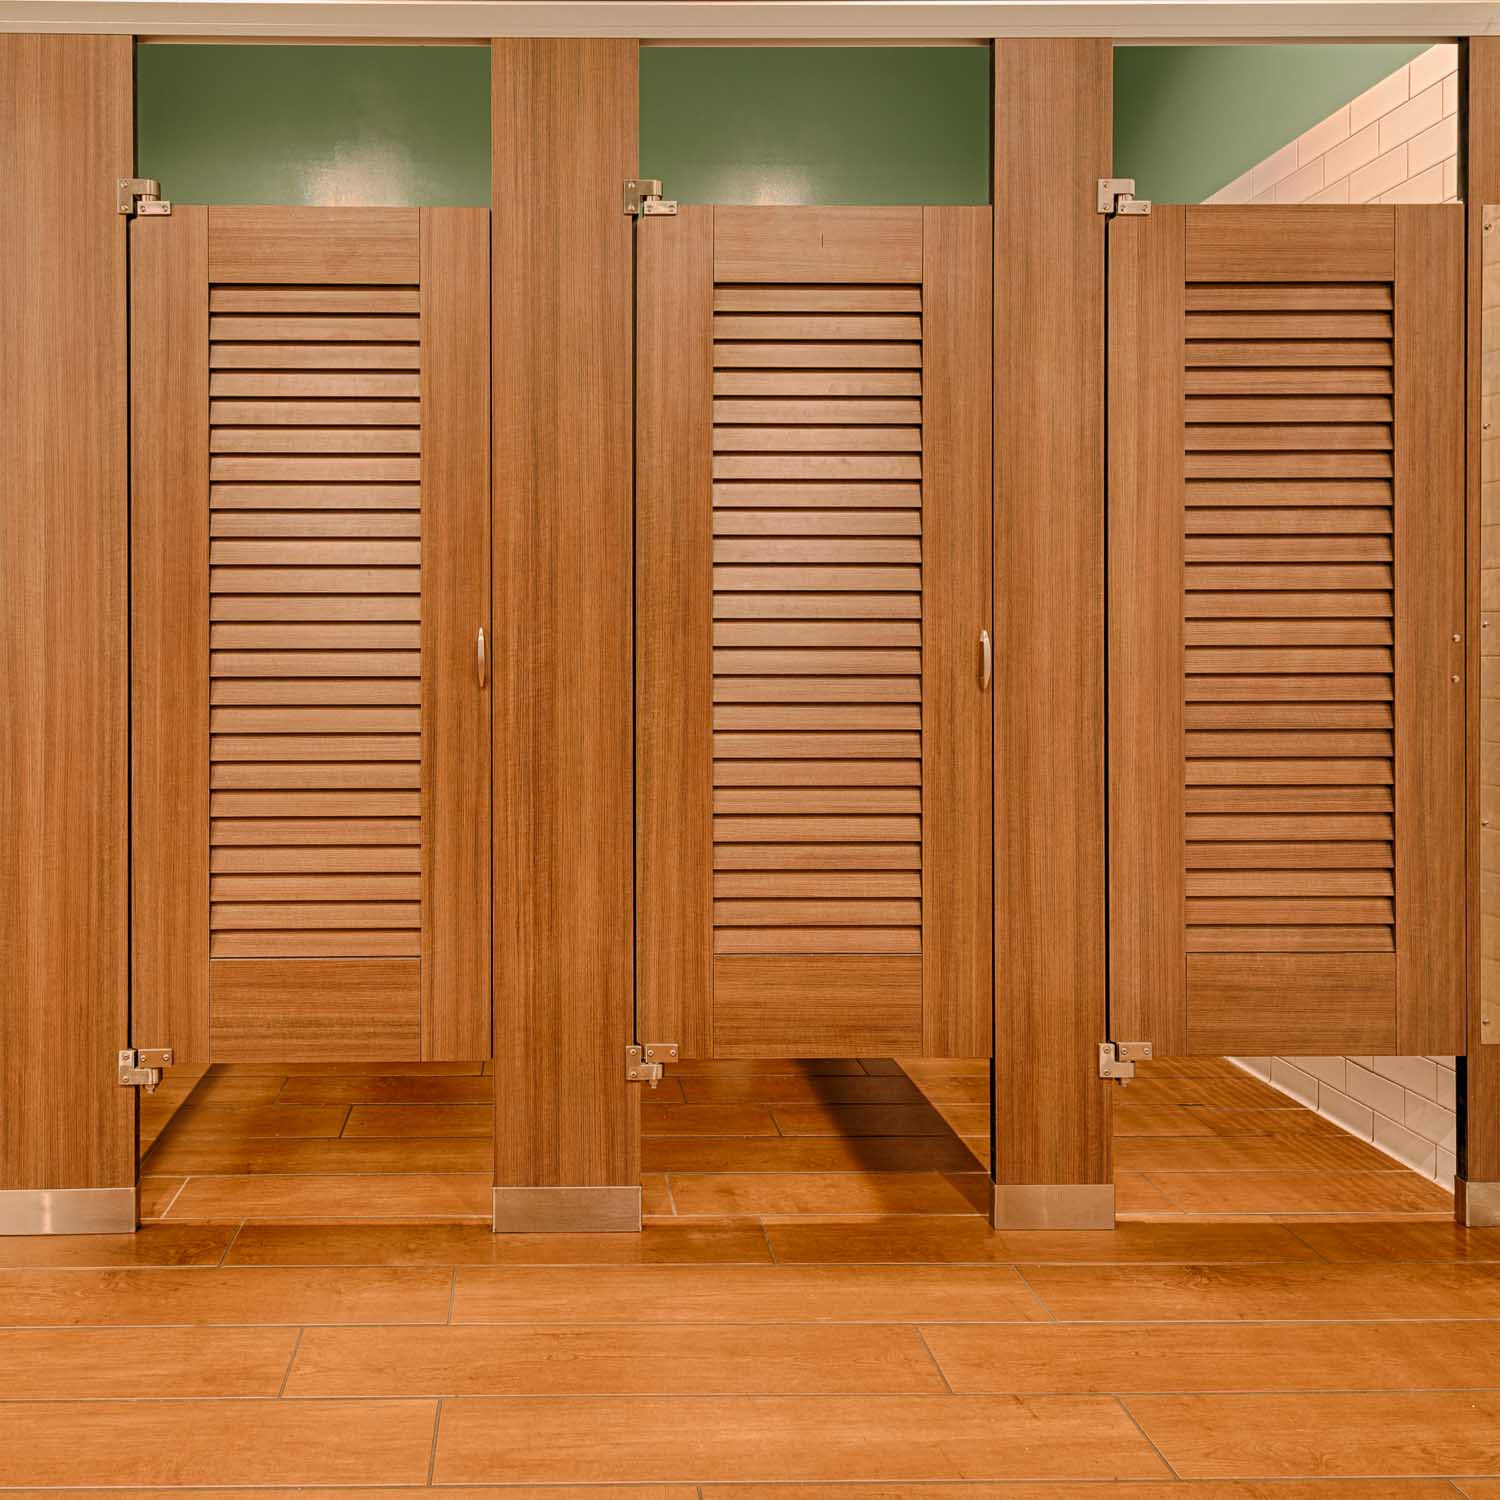 Ironwood Manufacturing, Co. - Toilet Partitions image | Ironwood Manufacturing, Co. - Toilet Partitions